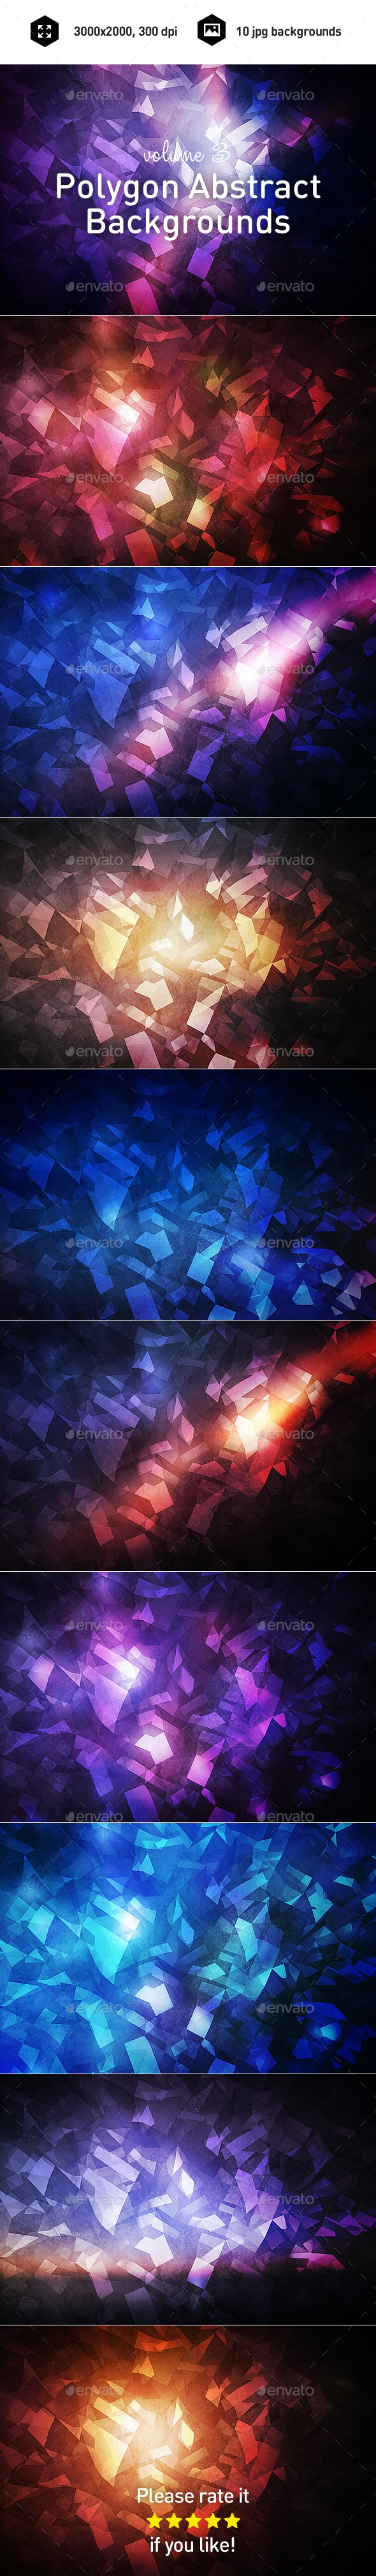 Polygon Abstract Backgrounds vol.3 - Abstract Backgrounds